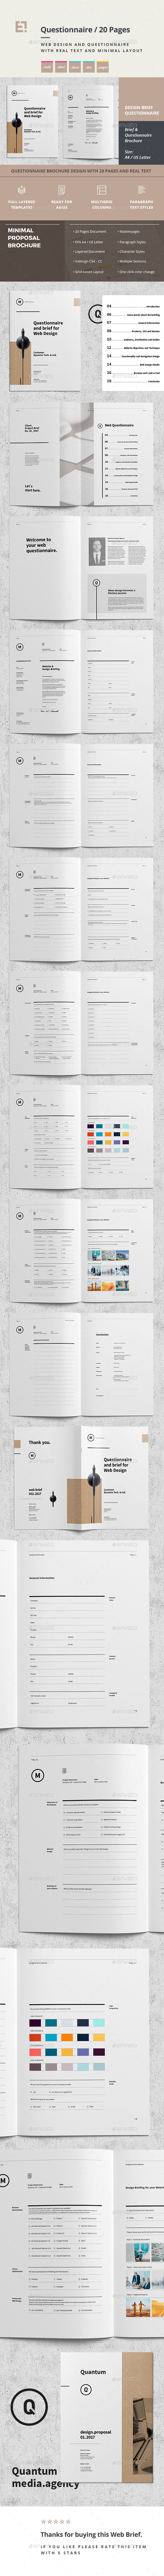 Questionnaire Web Design | Brochures, Typography layout and ...